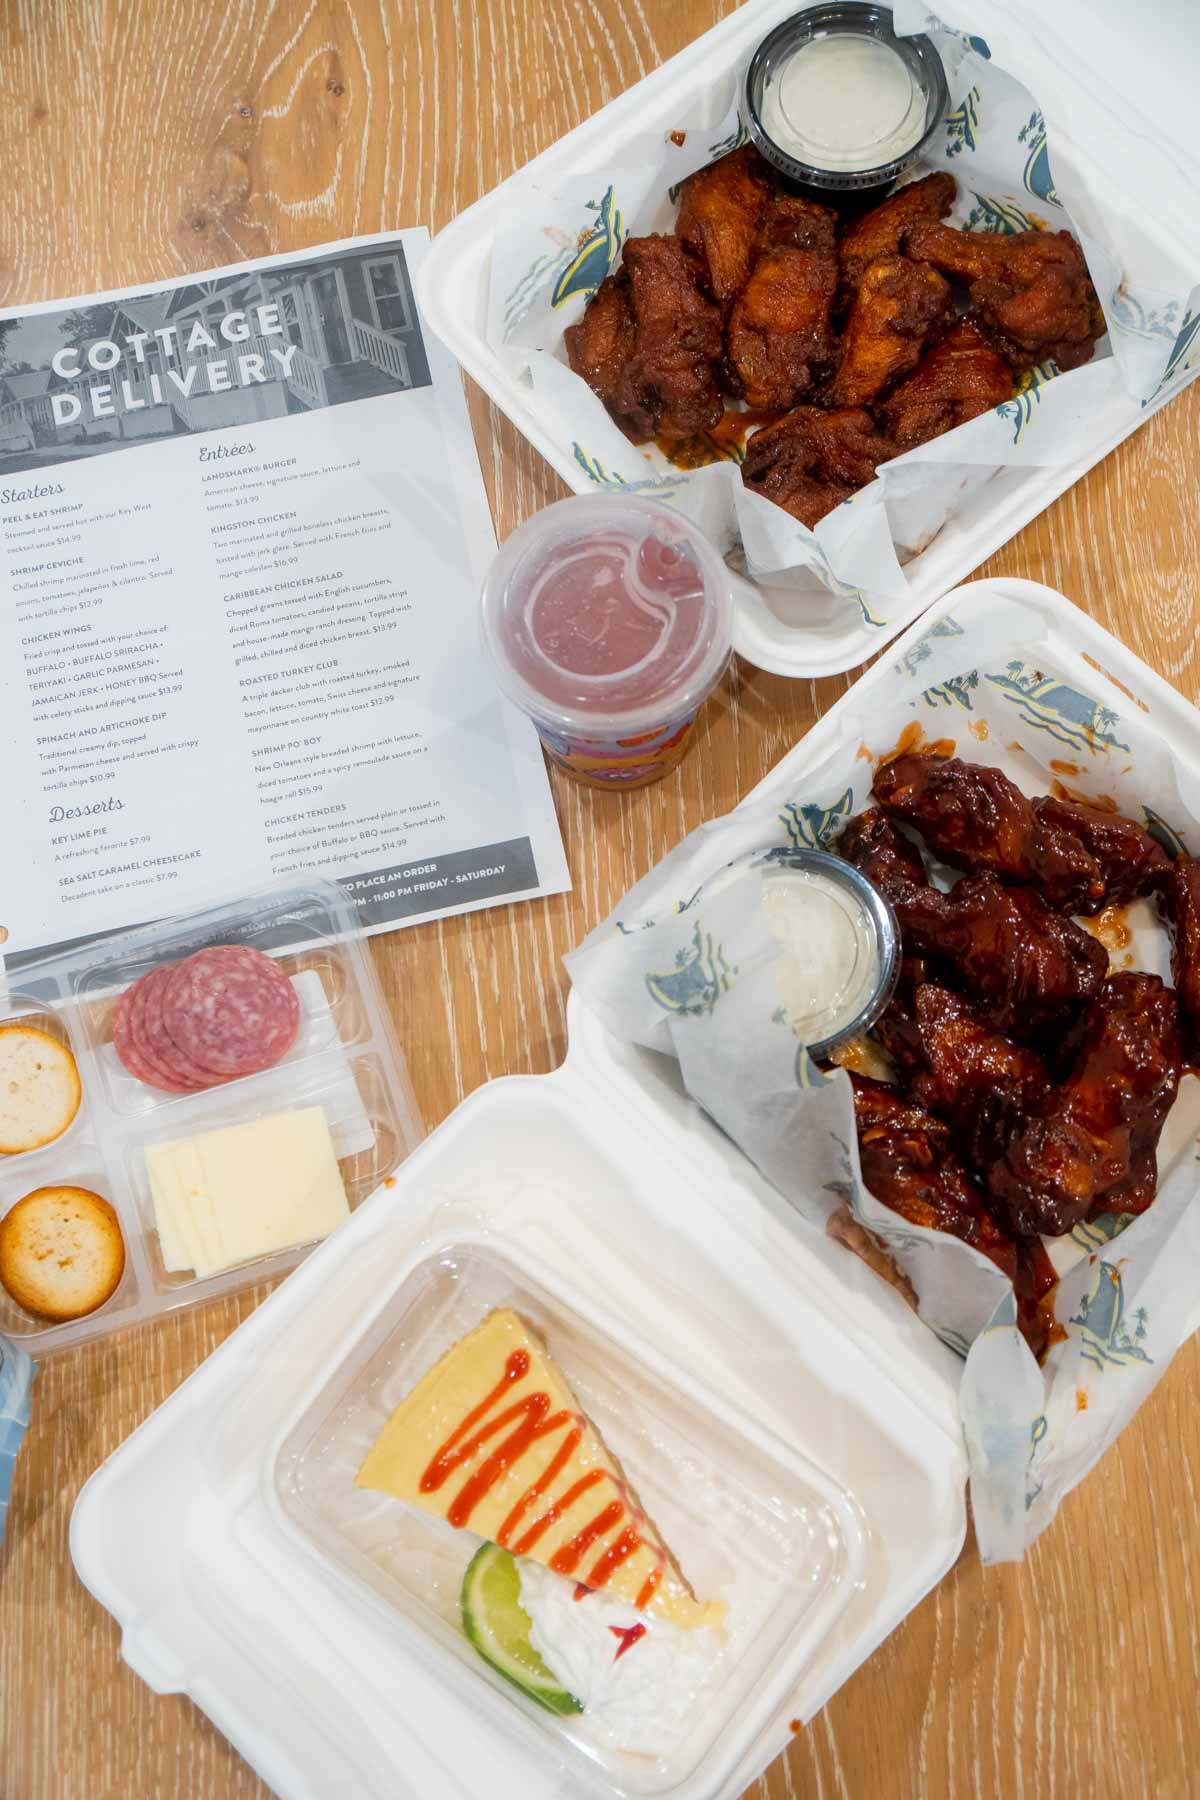 Cottage delivery menu and wings for Margaritaville Lake Conroe